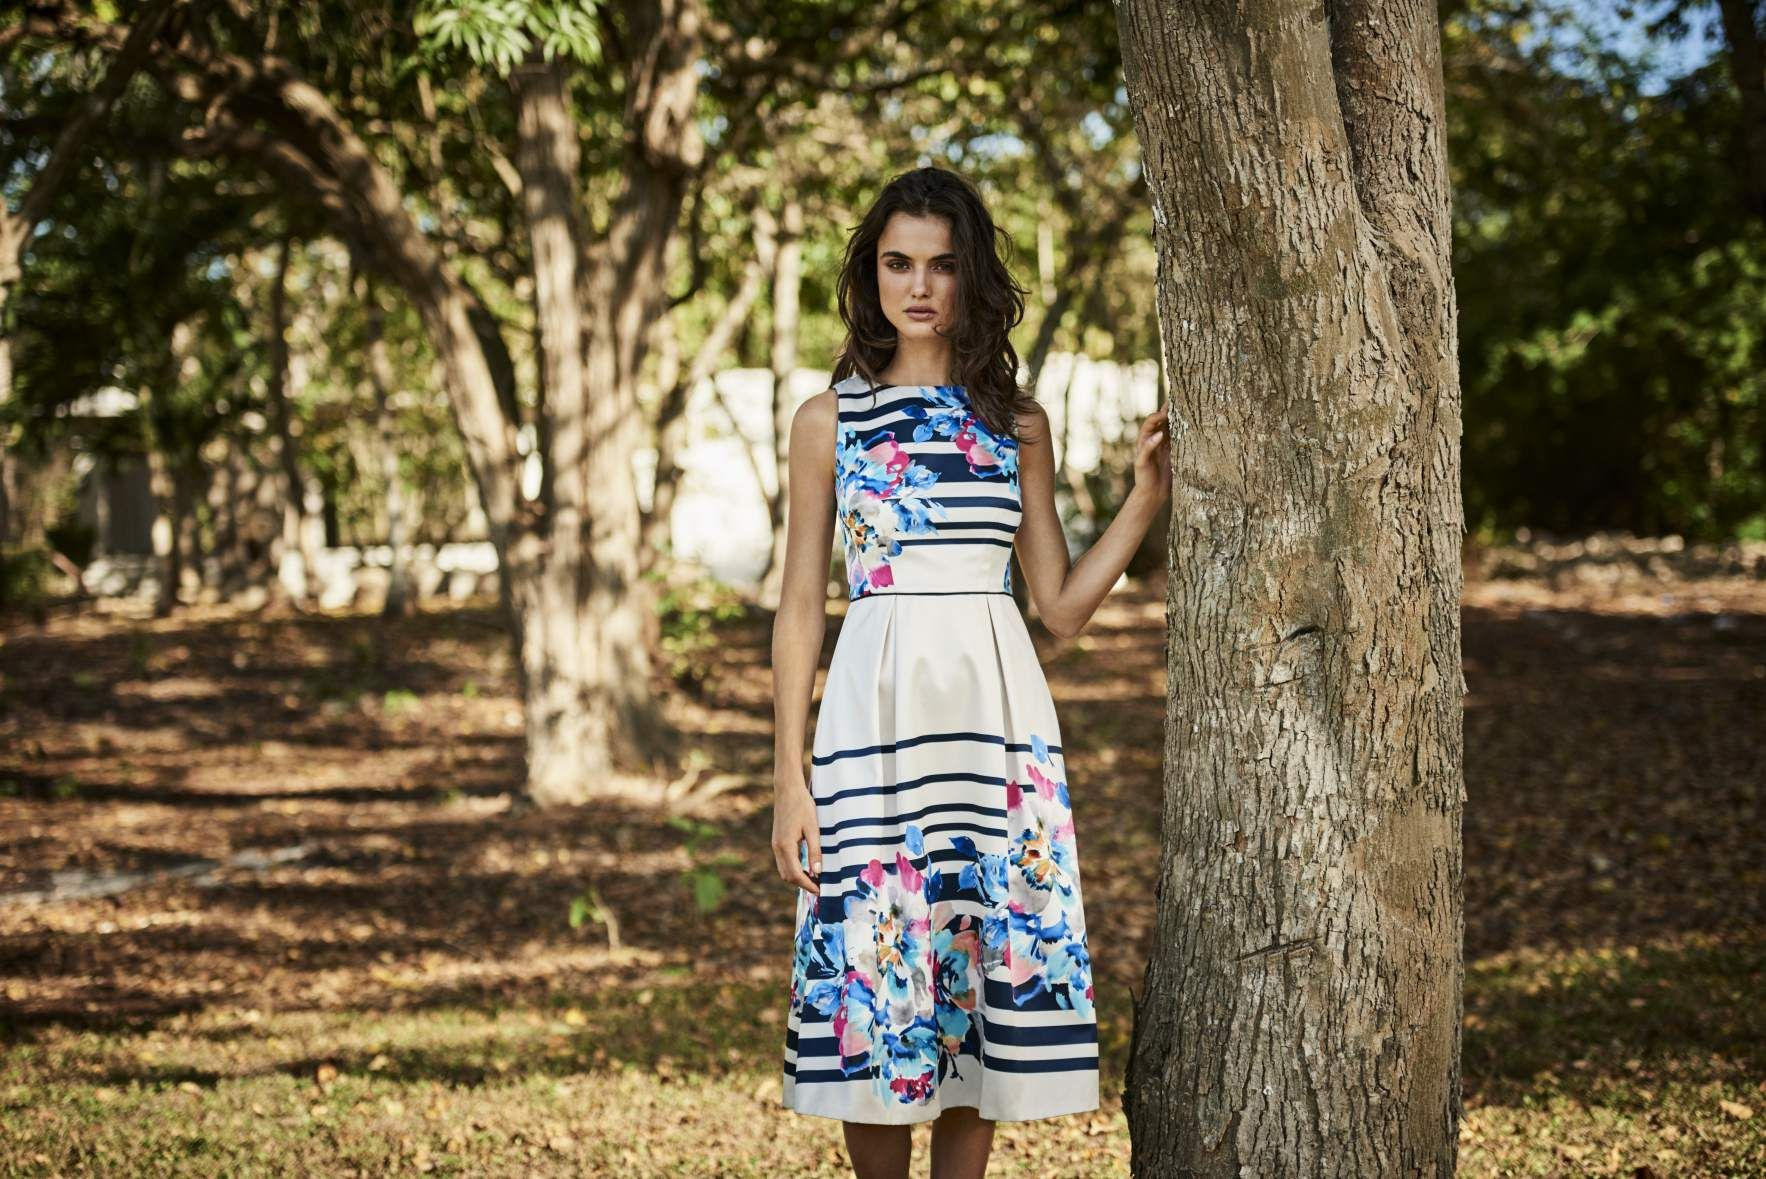 Our Hallie prom dress will ensure you look chic and feminine with effortless flair.